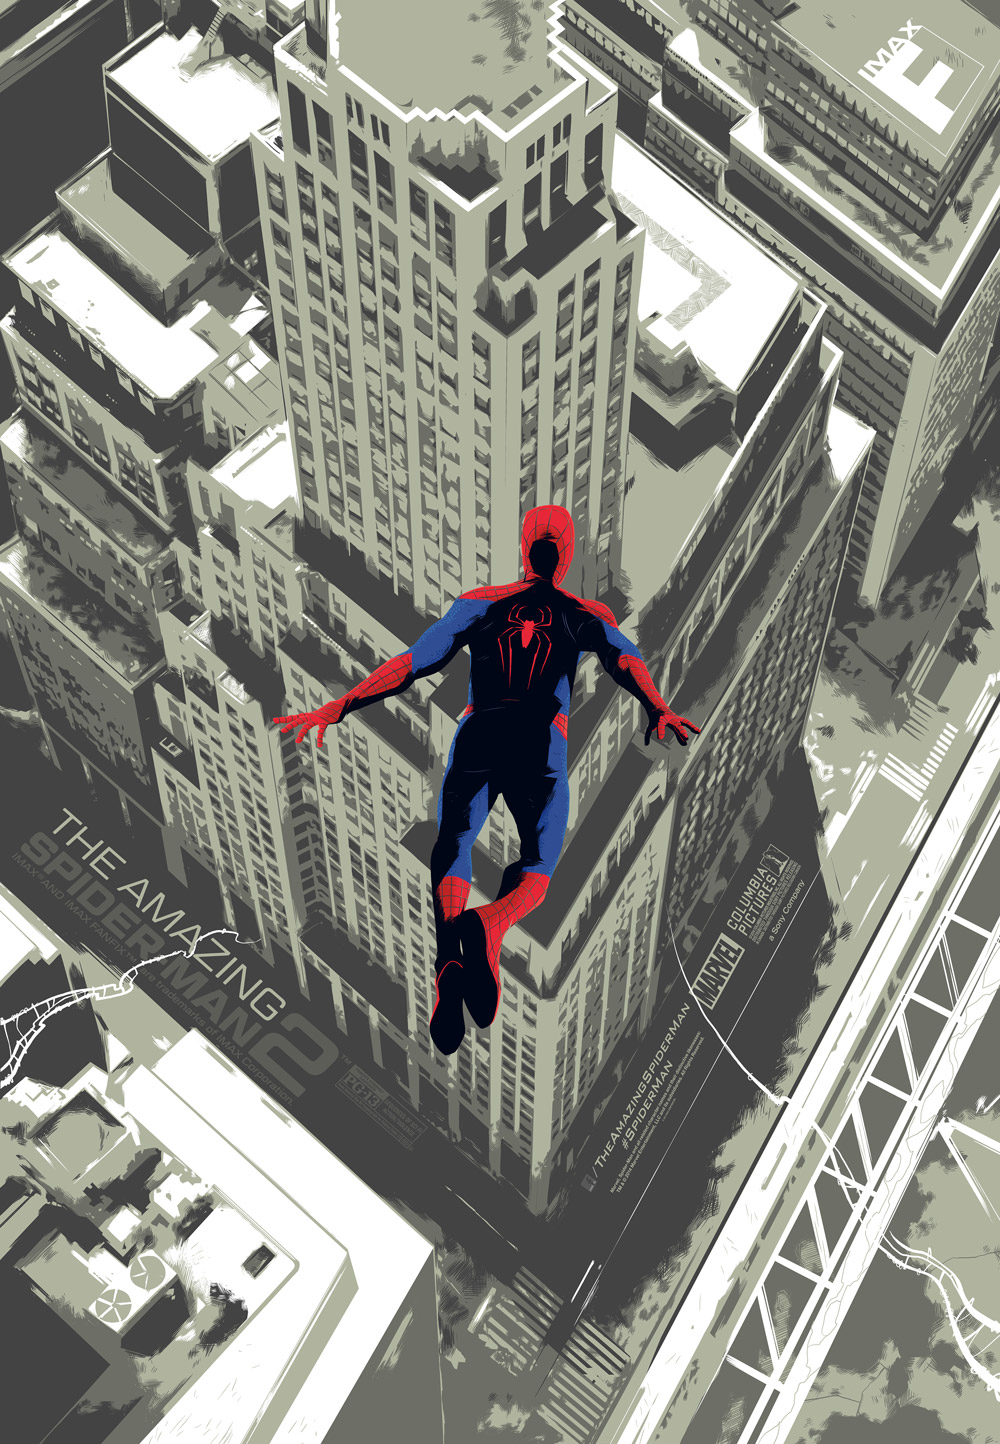 The Amazing Spider-Man 2 IMAX poster by   Matt Taylor